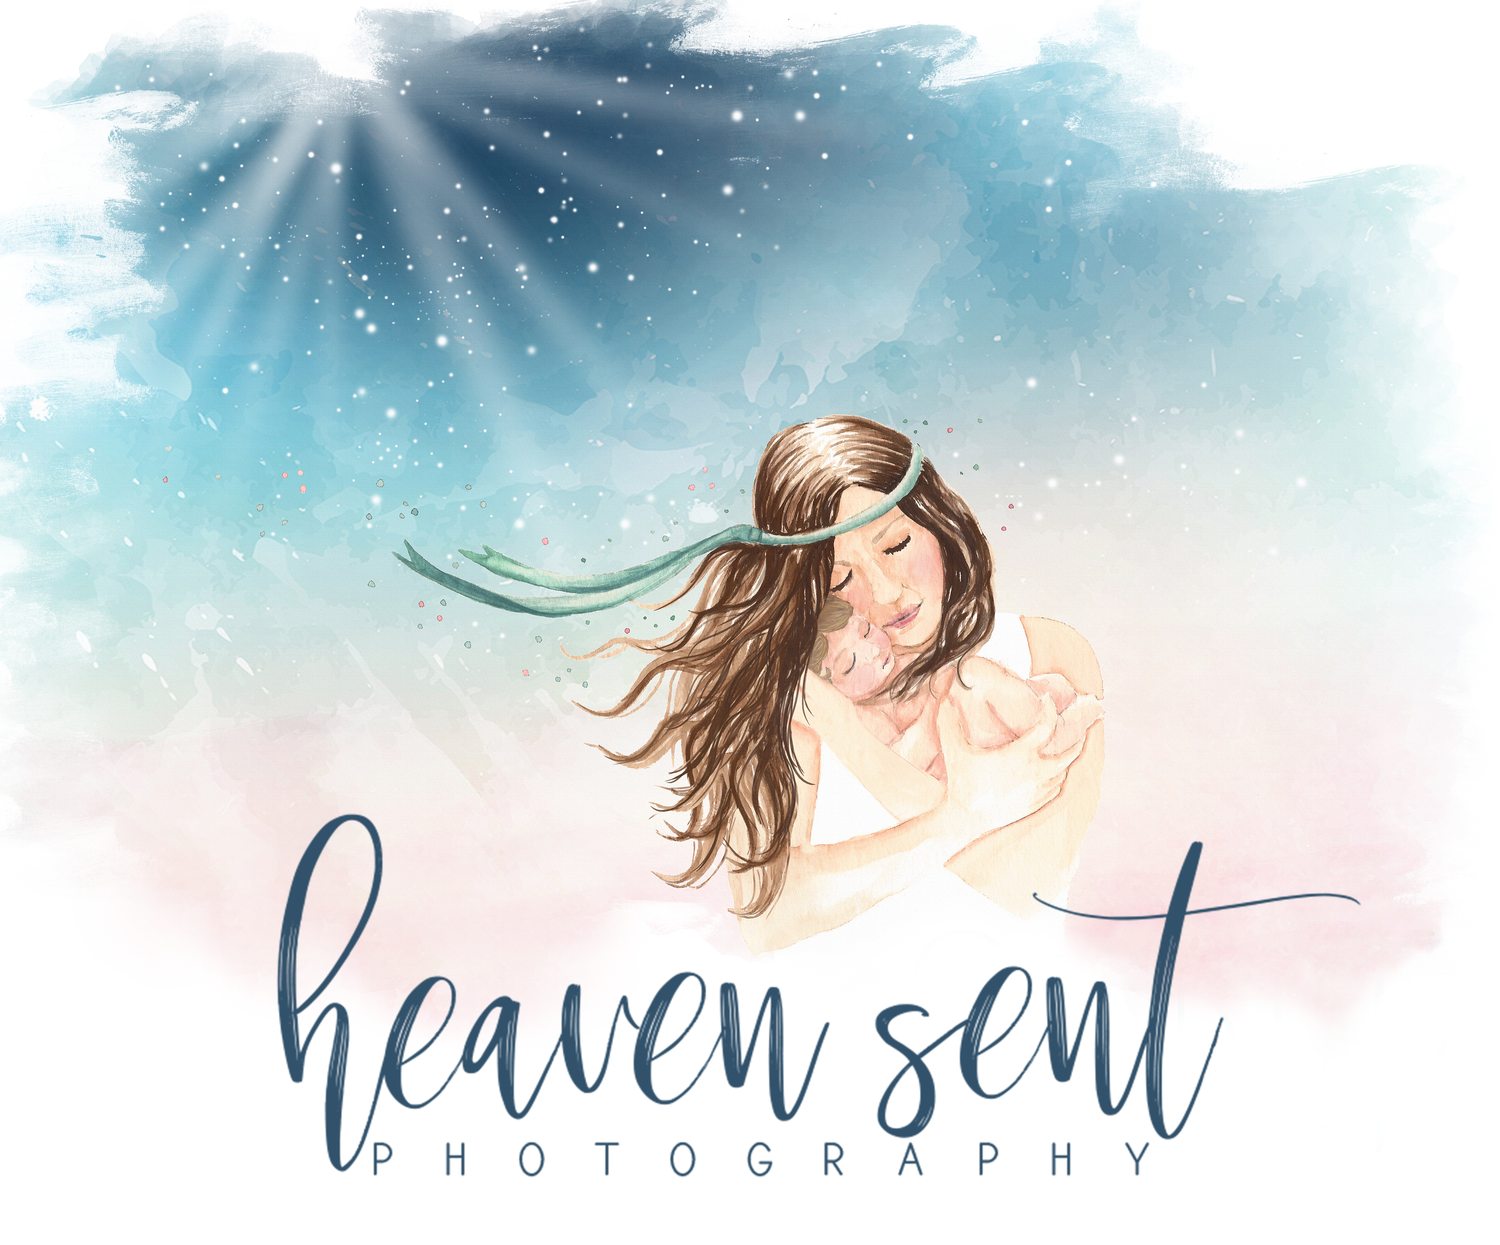 HEAVEN SENT PHOTOGRAPHY